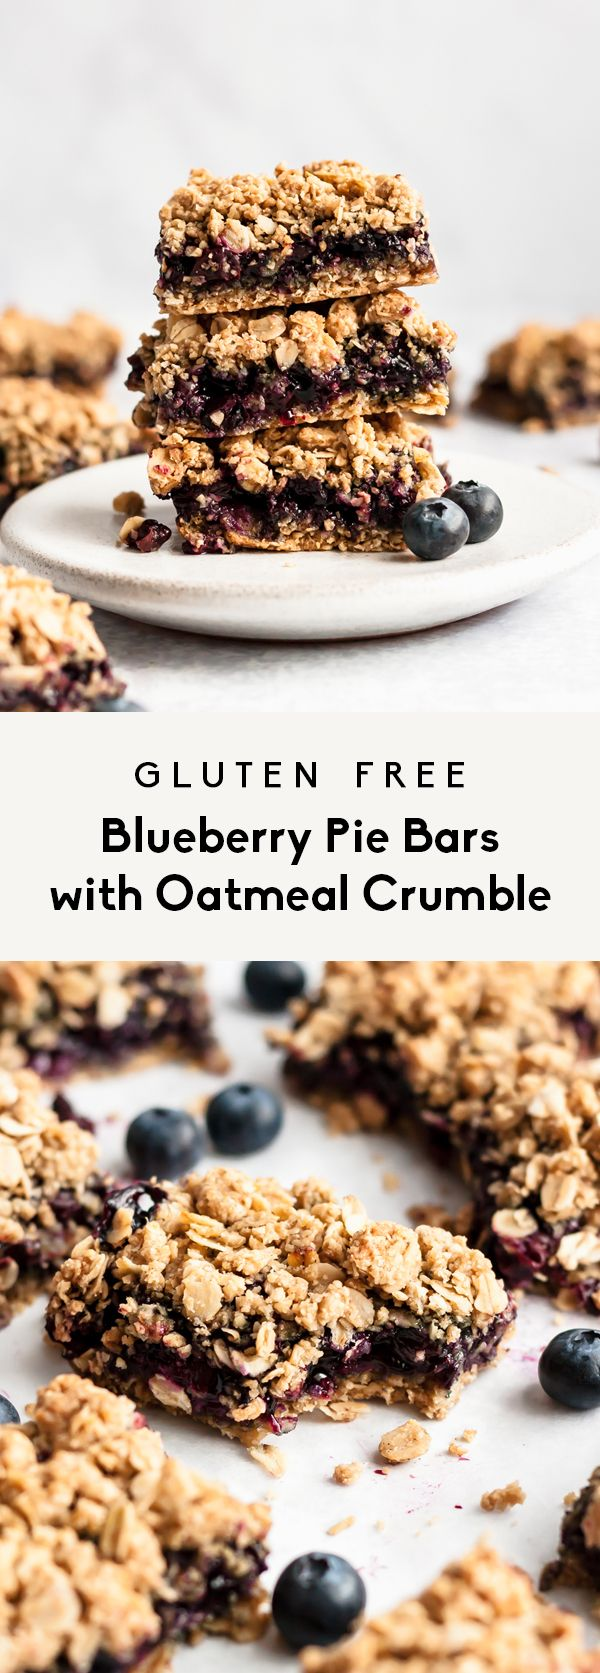 Blueberry Pie Bars with Oatmeal Crumble | Ambitious Kitchen